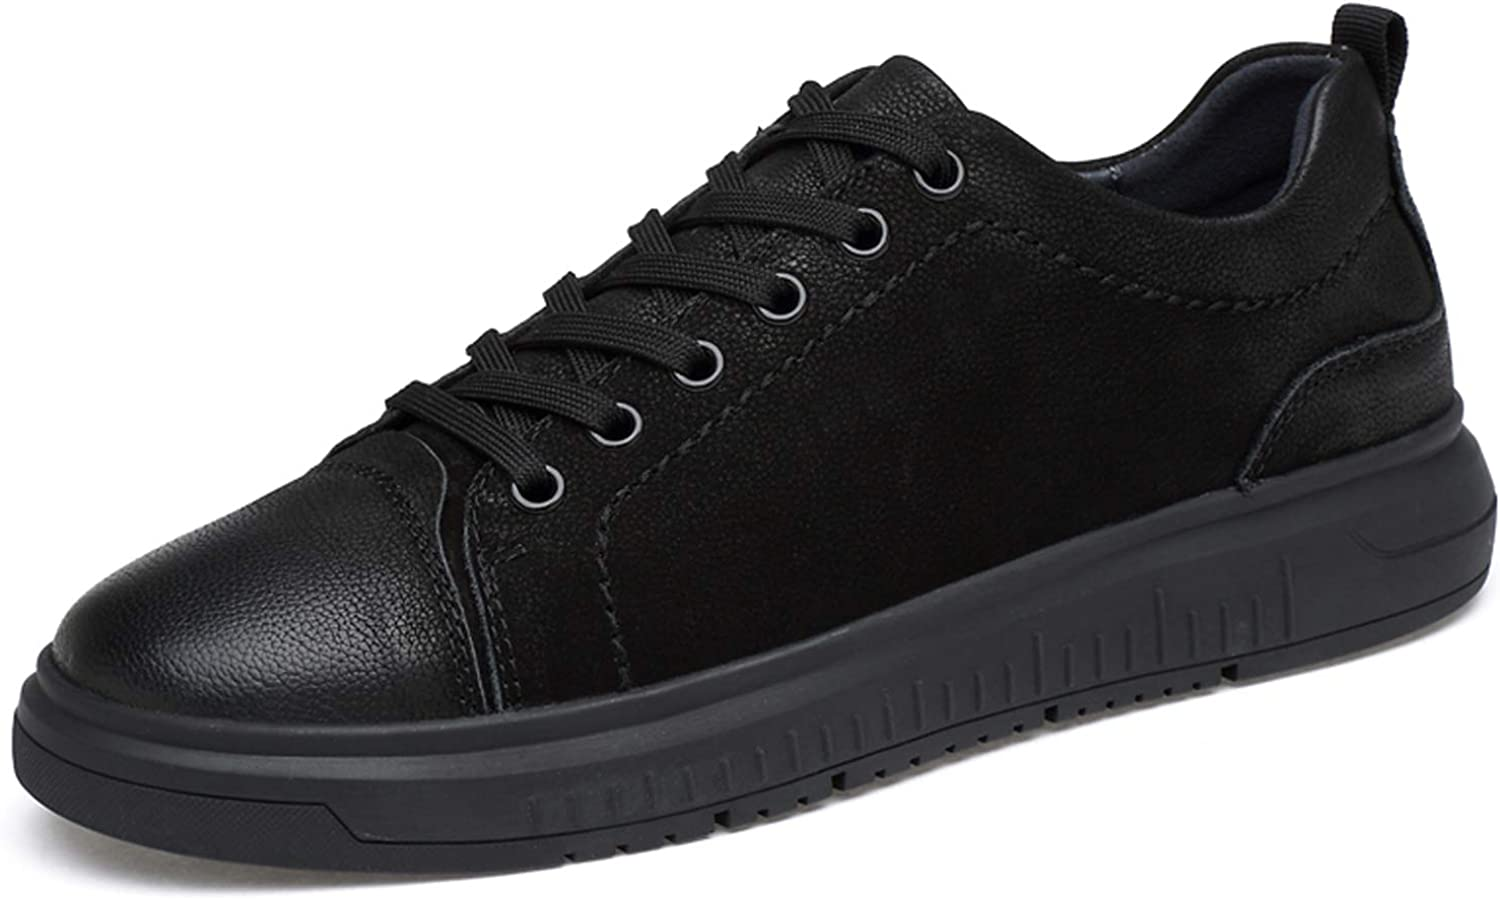 shoes house Leather cross trainer non-slip low-neck sneakers black lace-up oxford size 37-44,Black,EU42 US8.5(M) UK8